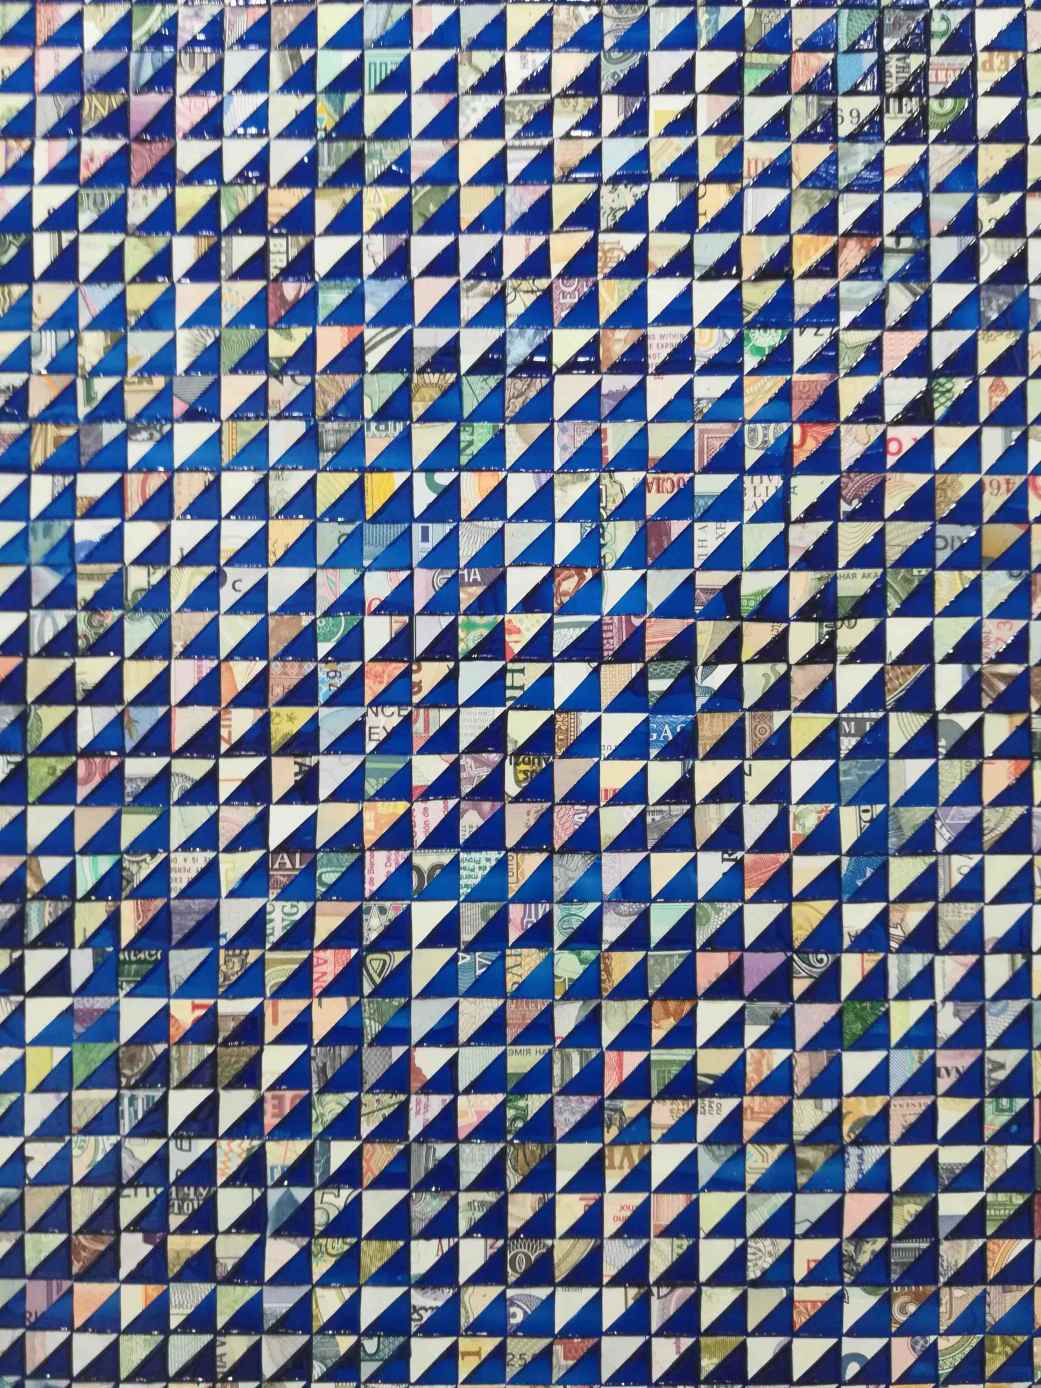 World Automatic Blue Tablet /Pyramid grid repeat